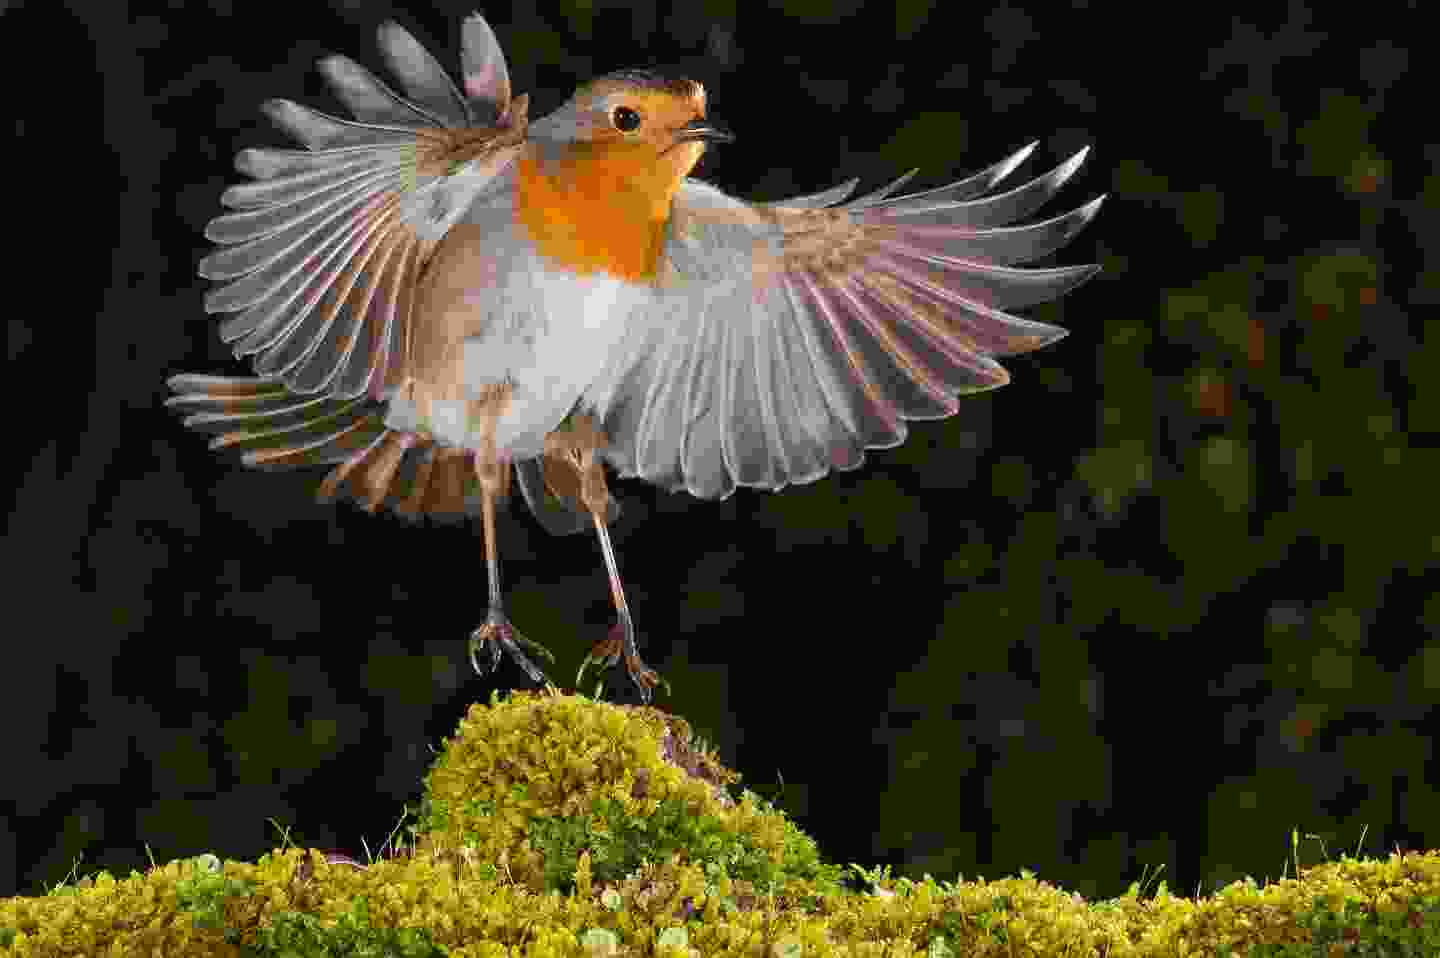 A robin mid-flight in the United Kingdom (Shutterstock)